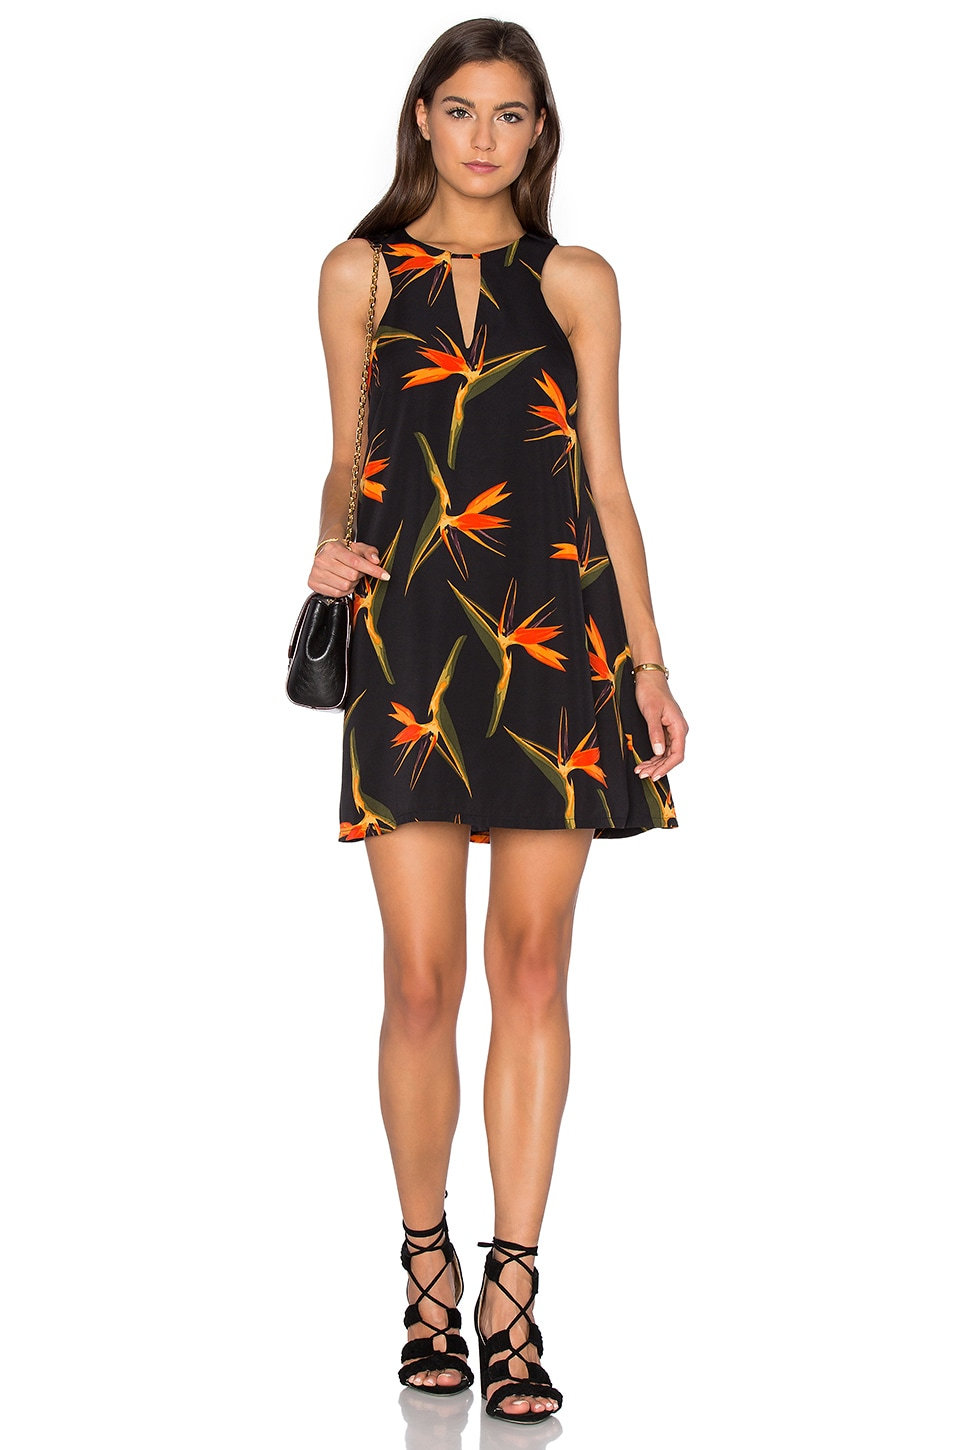 J.O.A. Sleeveless Keyhole Shift Dress in Orange Tropic